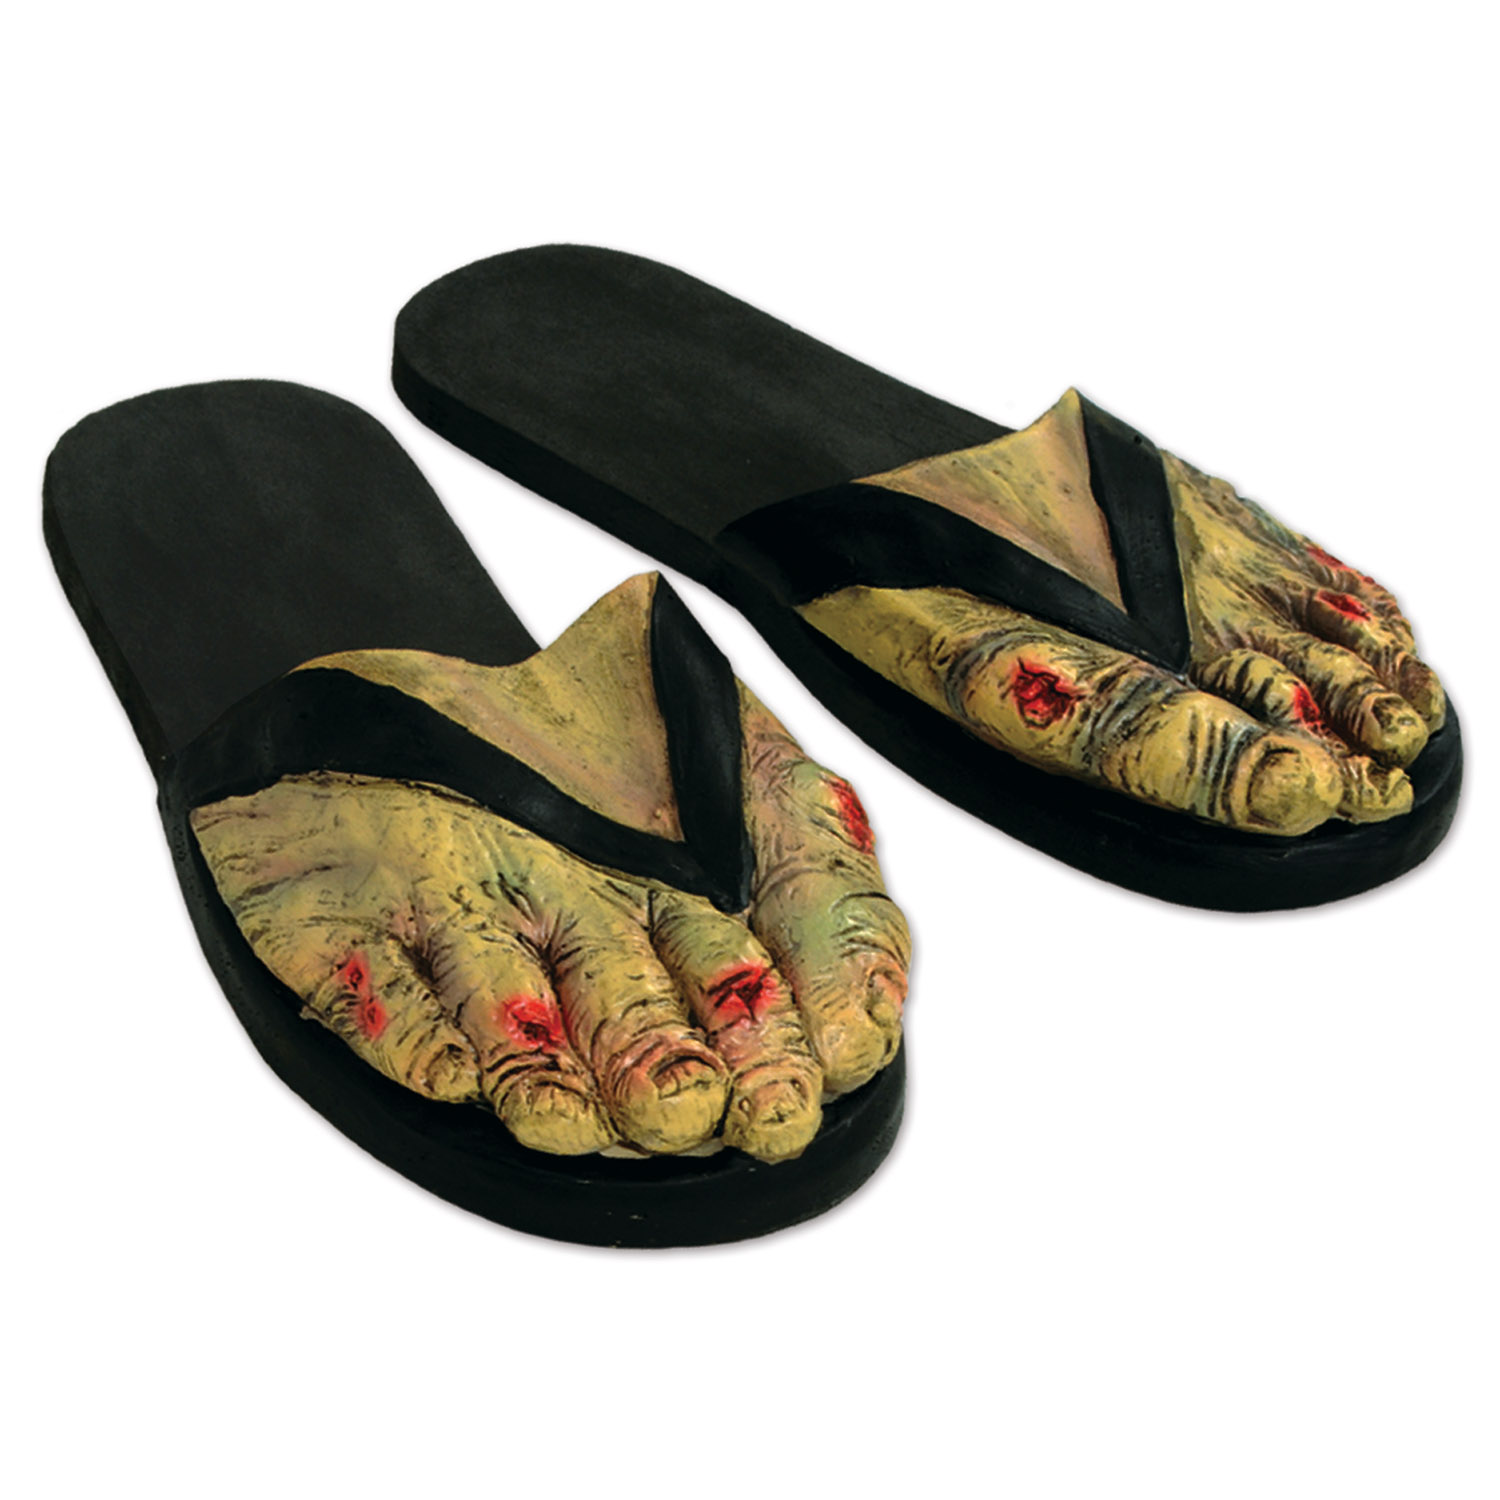 6 Units of Zombie Feet Slippers one size fits most